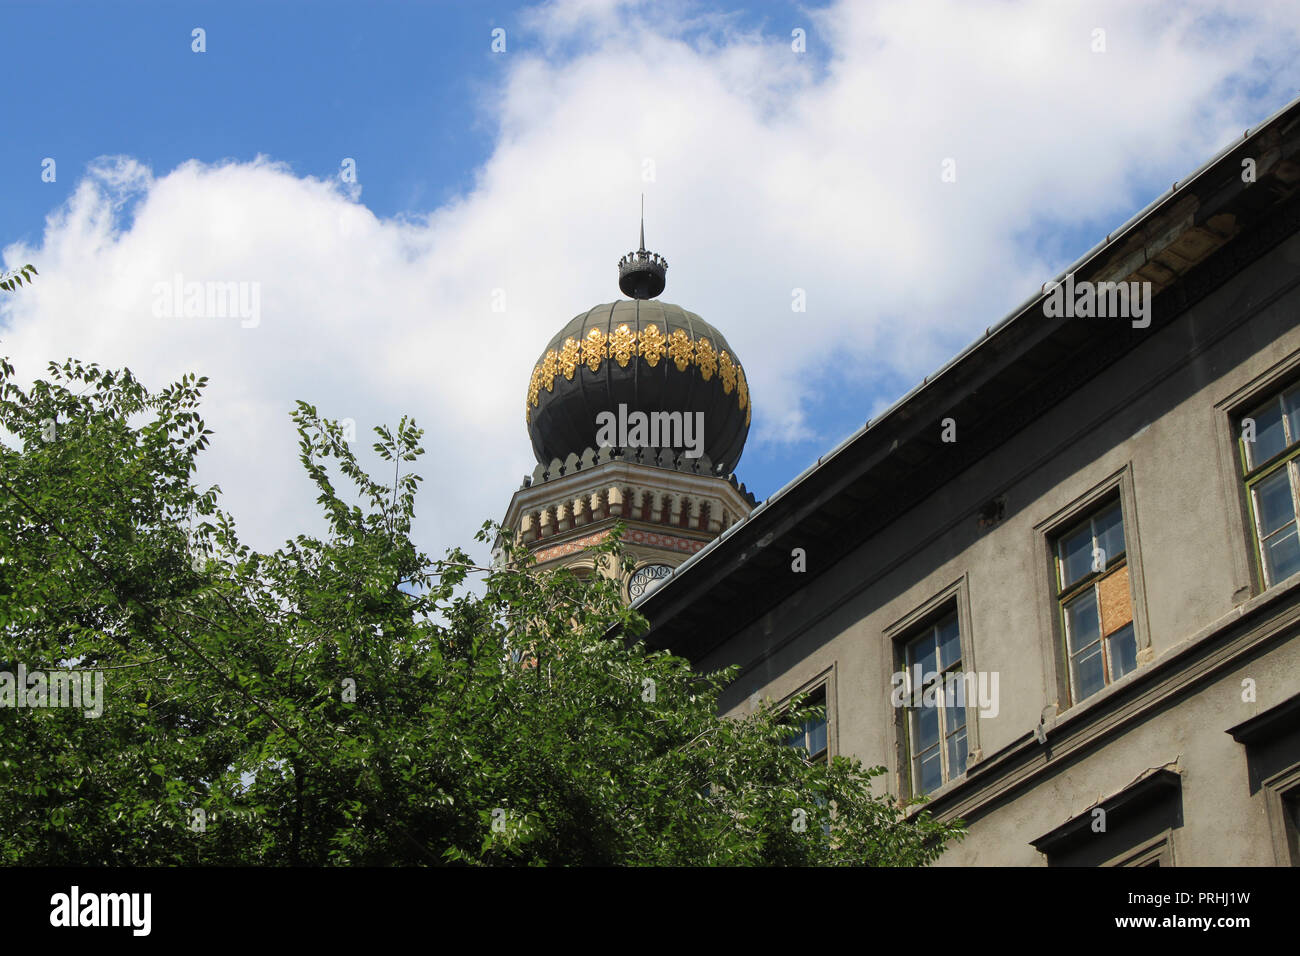 One towers of the Great Synagogue of Budapest (also known as Dohany Street Synagogue) Eastern Europe, Hungary Stock Photo